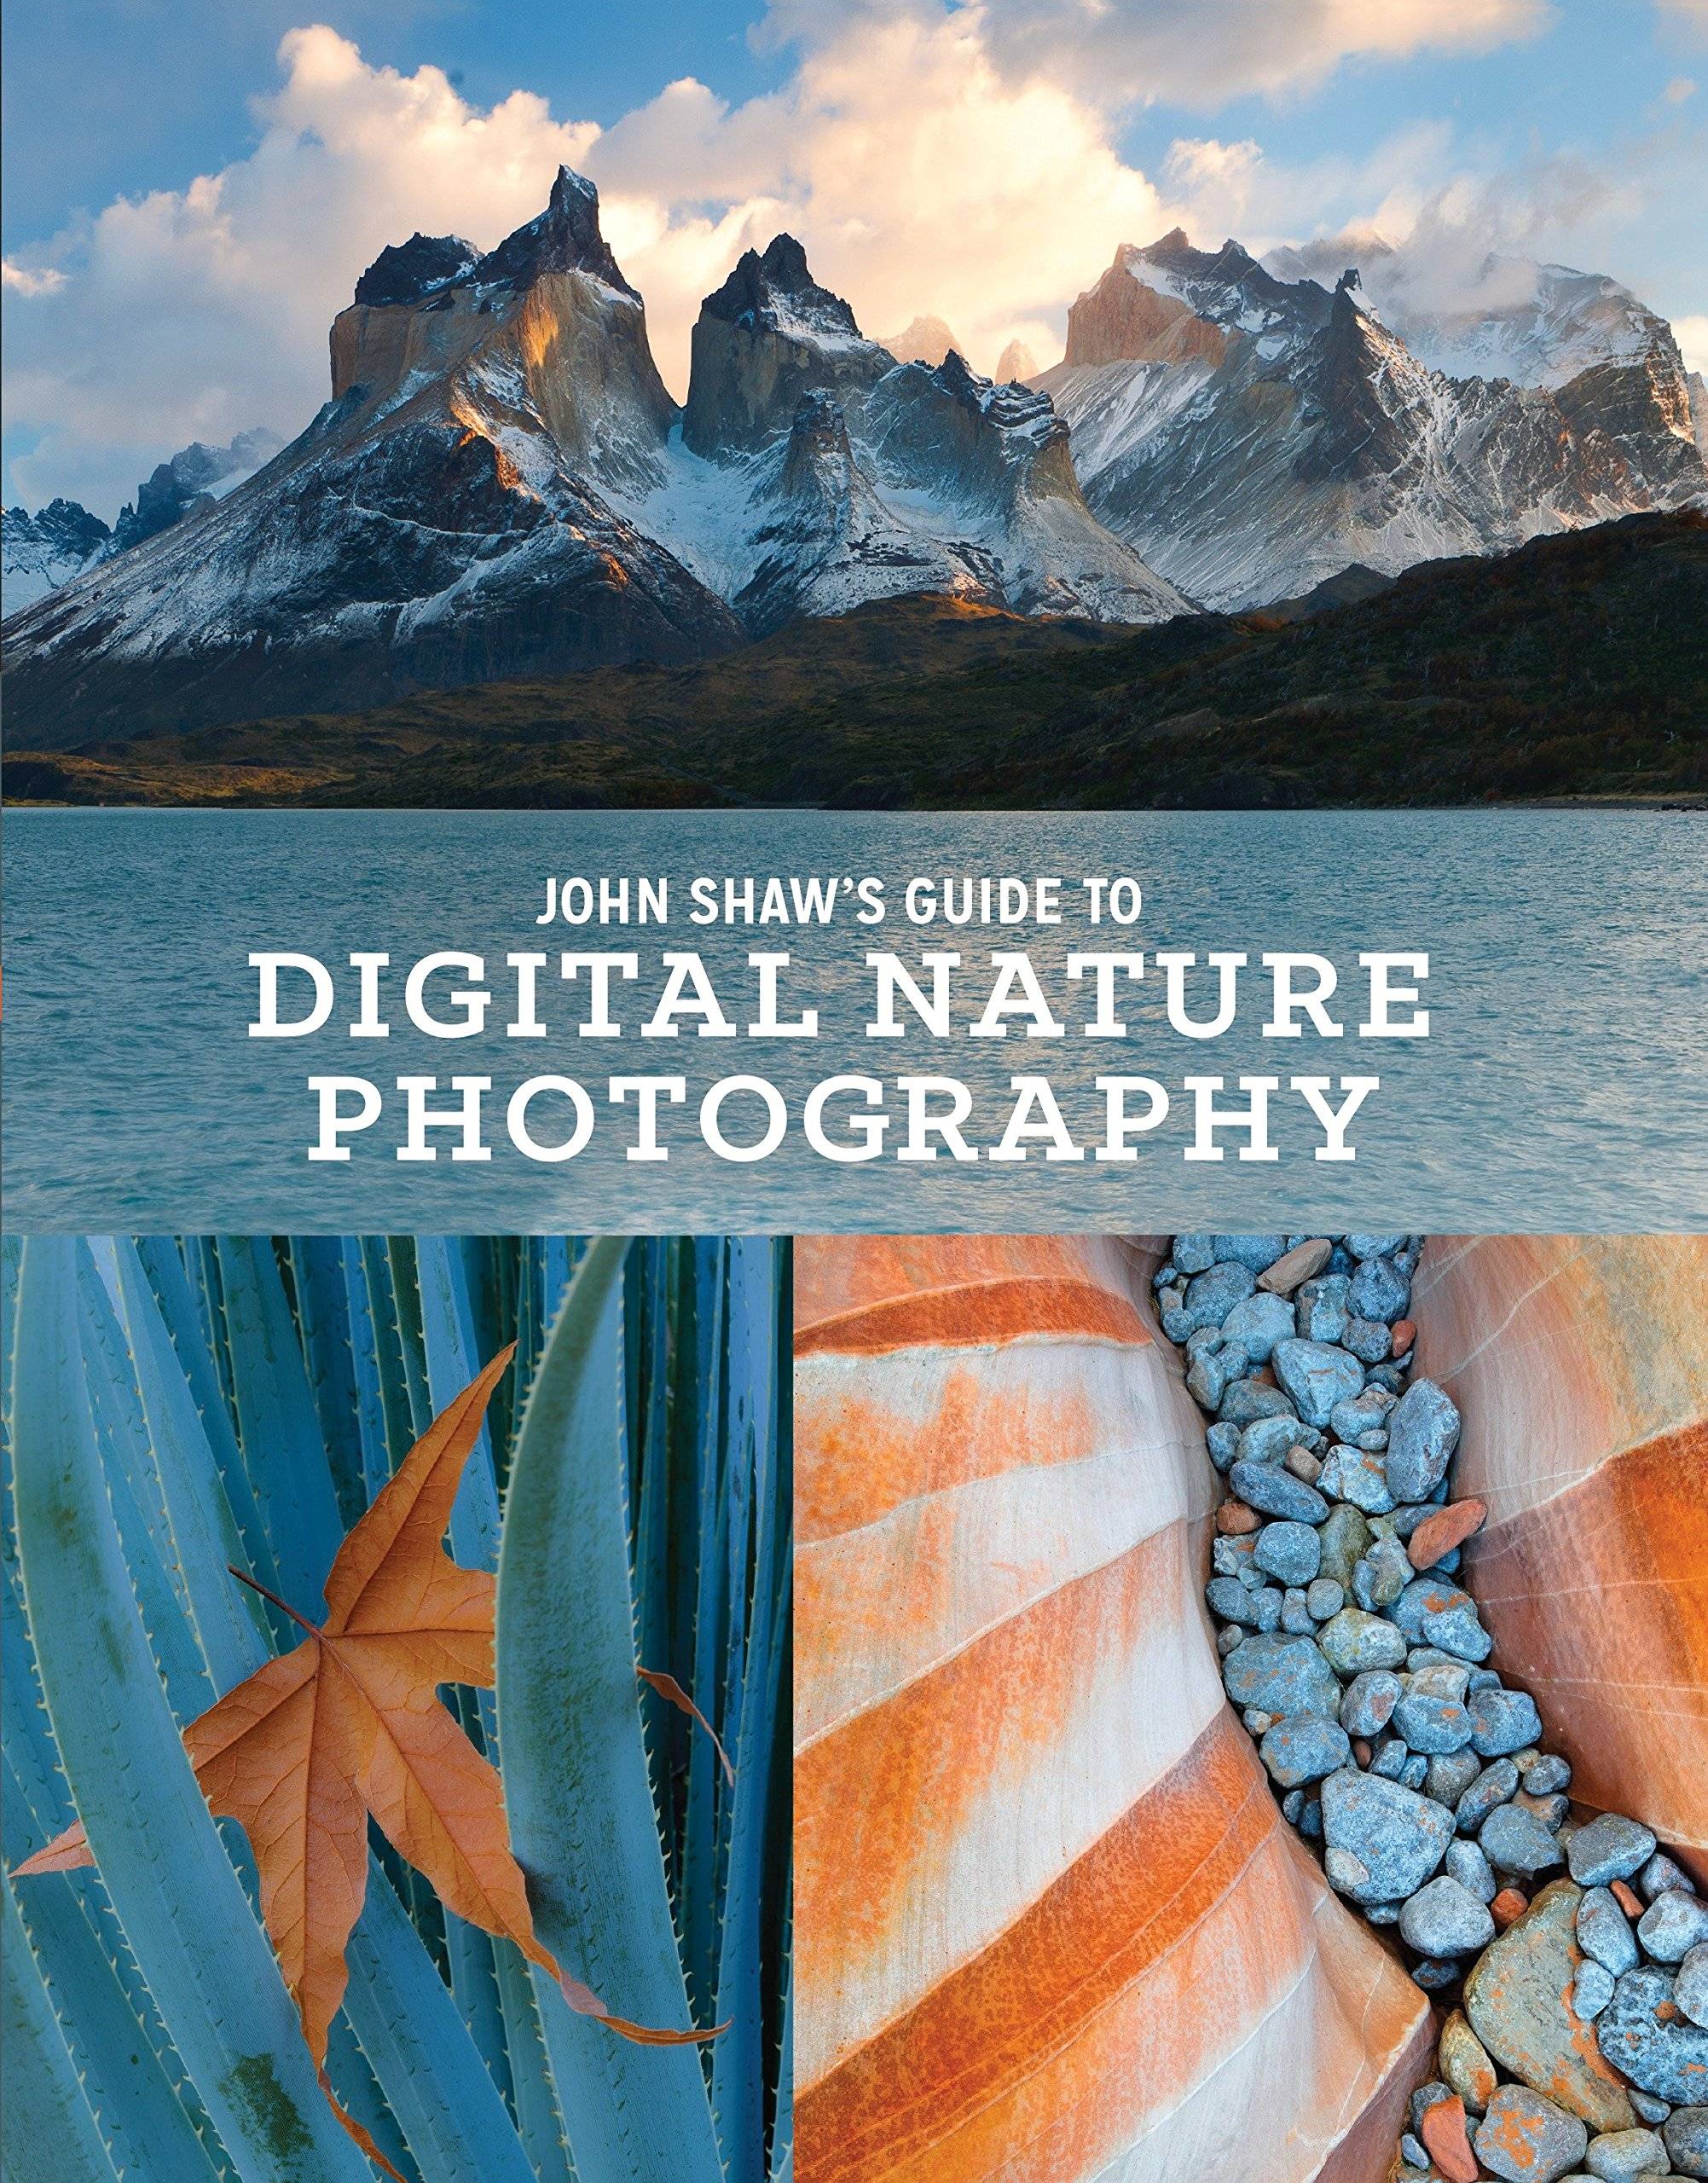 John Shaw's Guide to Digital Nature Photography pdf